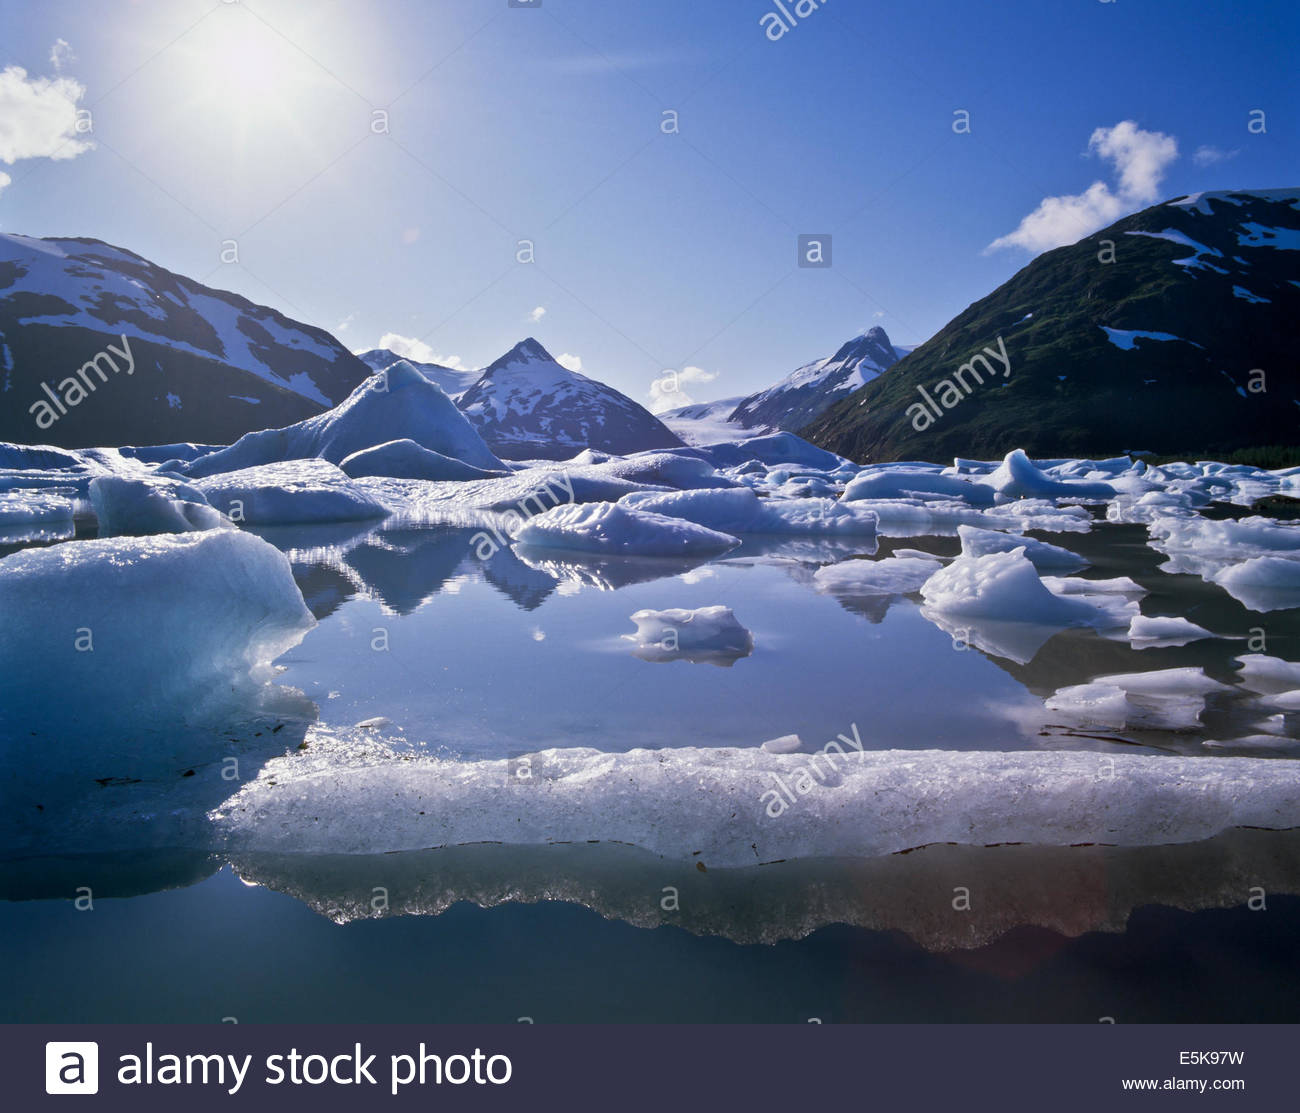 Icebergs from the Portage Glacier in Chugach National Forest in Alaska USA Stock Photo